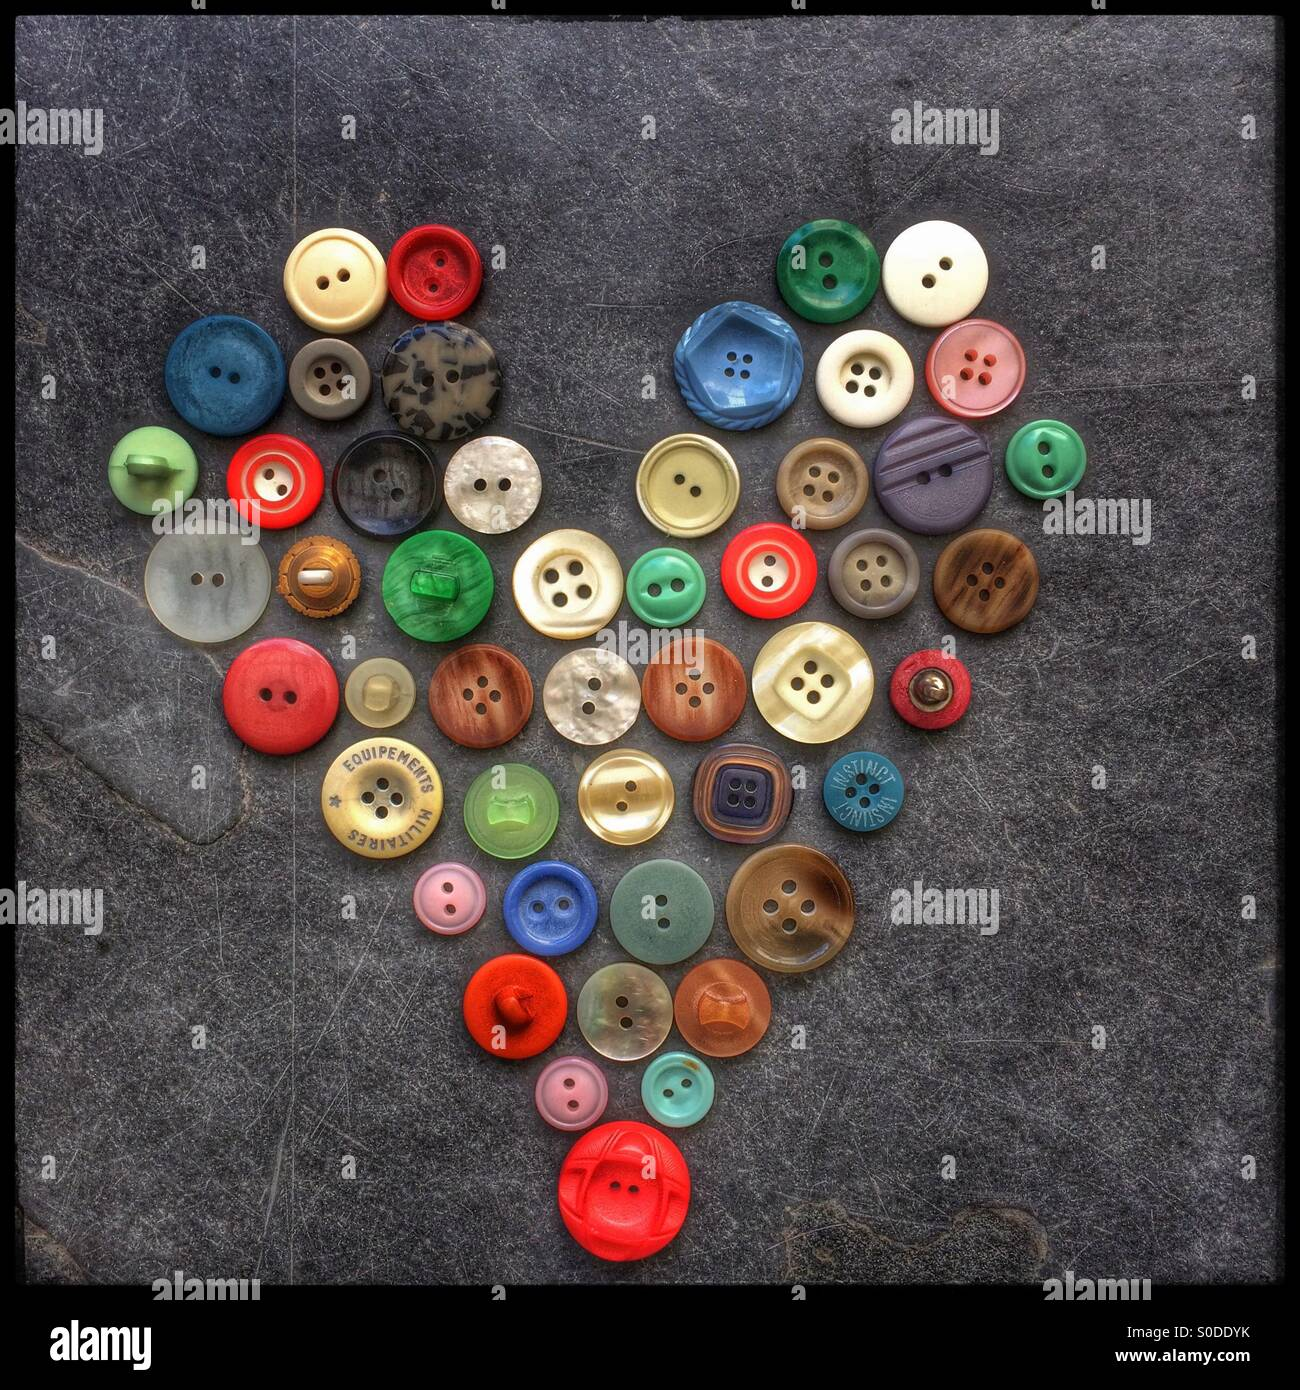 Heart shape made of buttons. - Stock Image